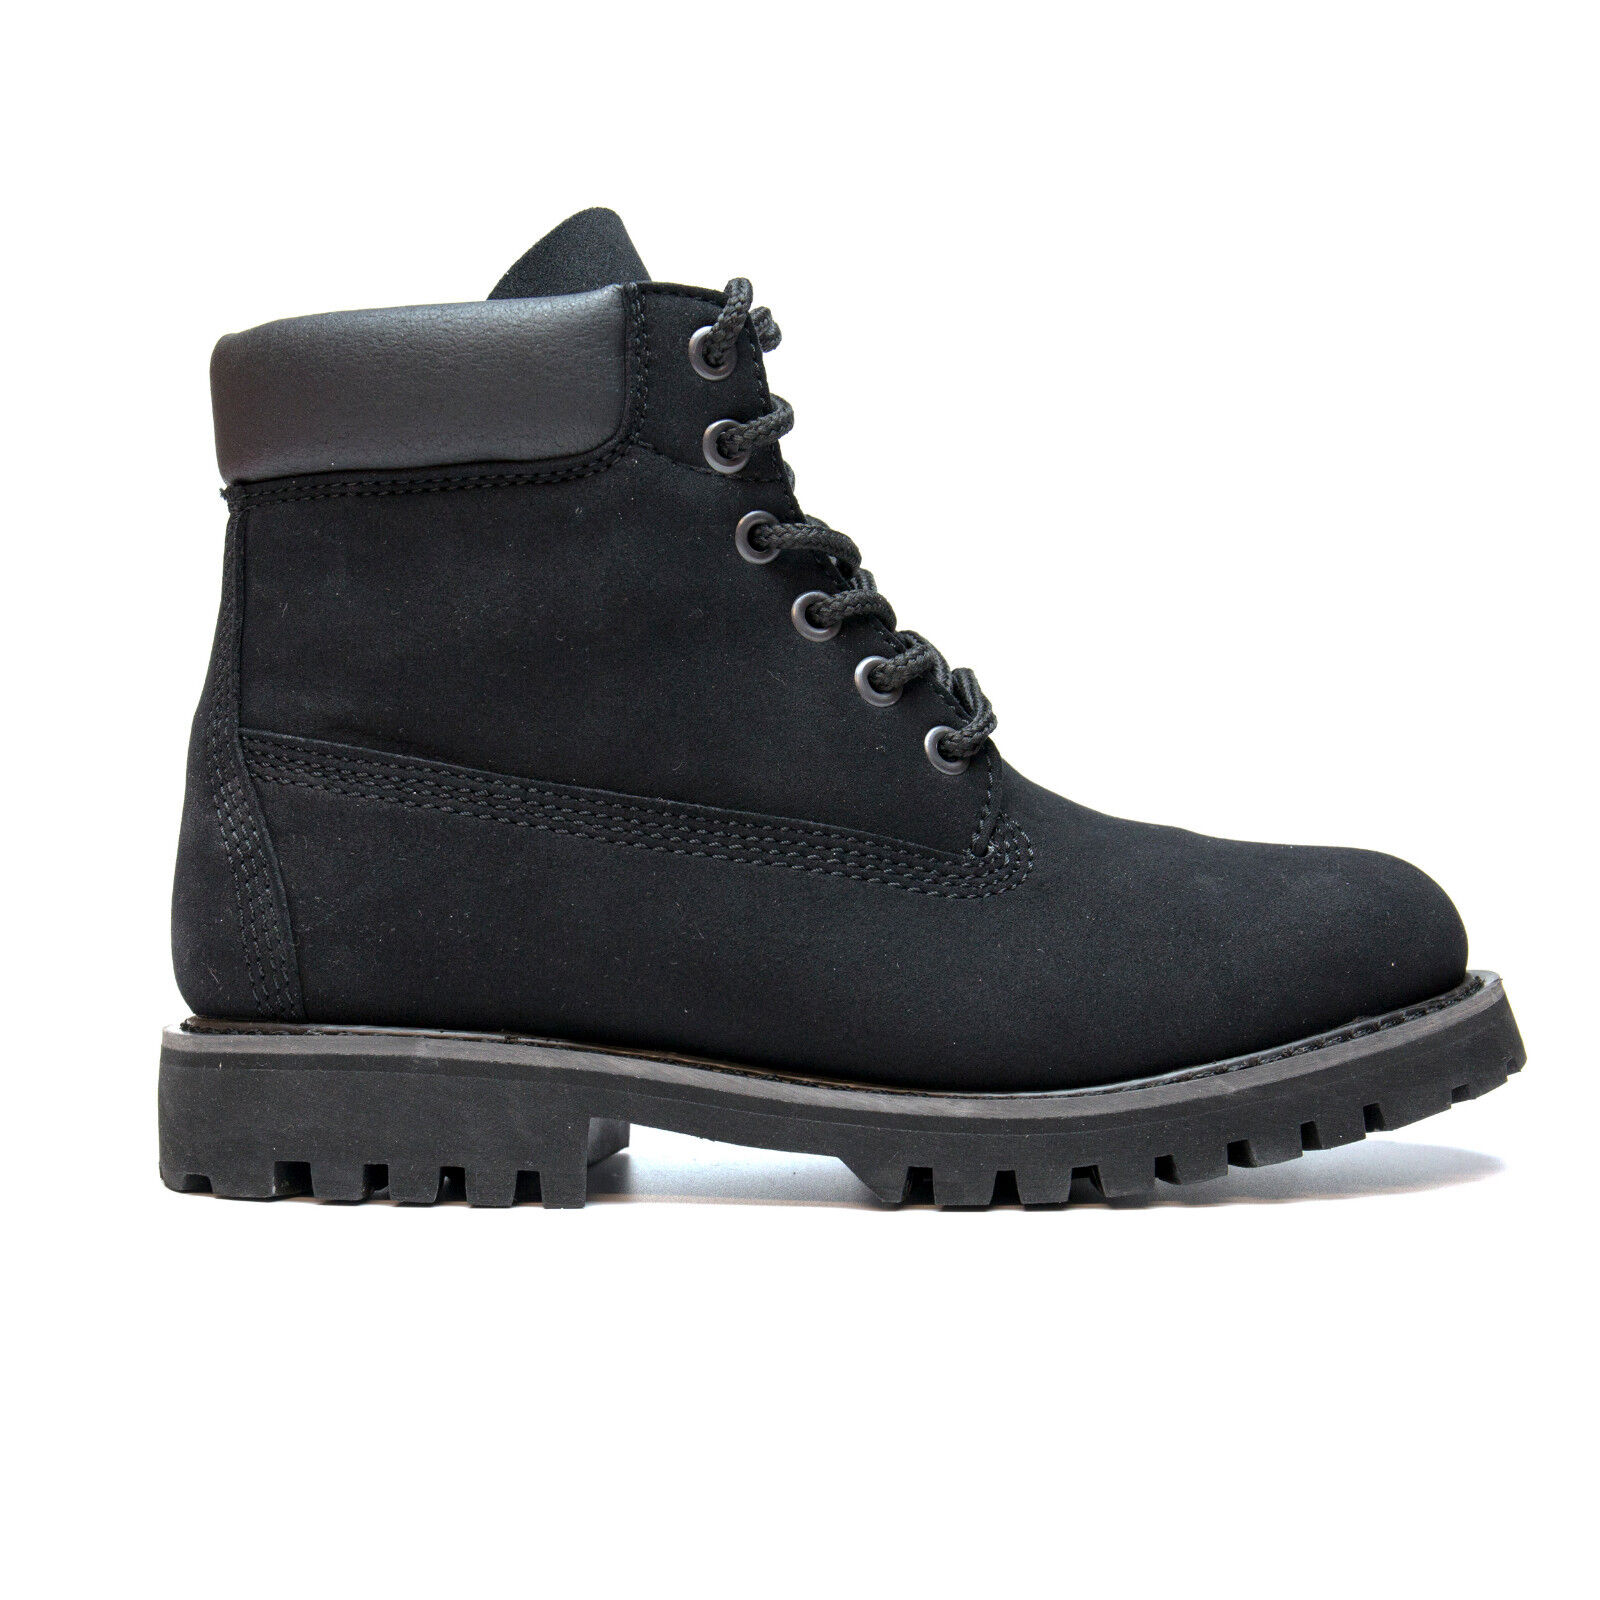 Vegan Stiefel mountain urban durable made on ecological microfiber, durable urban and breathable df733a